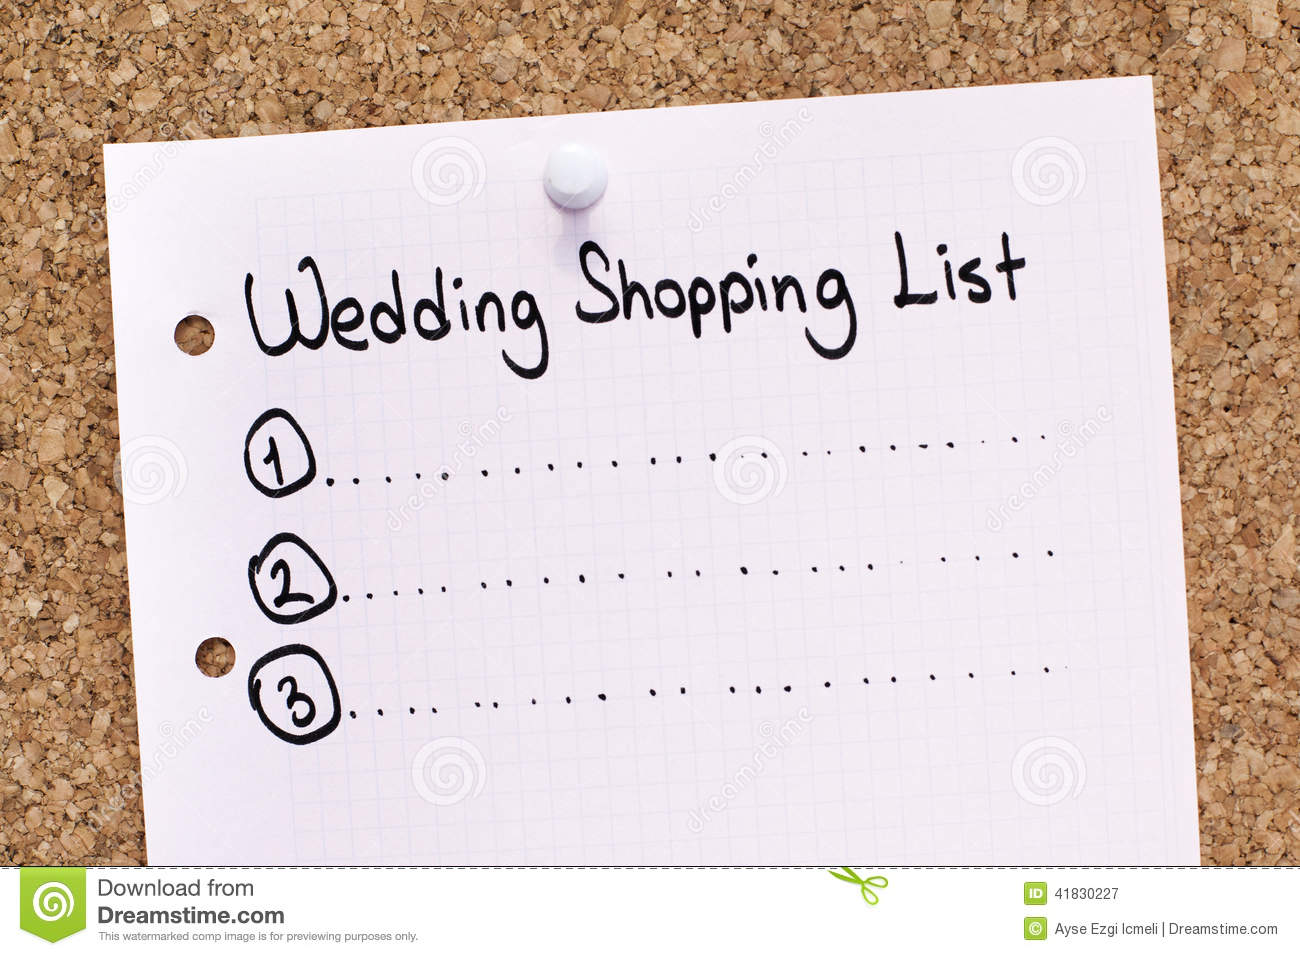 Shopping for Wedding